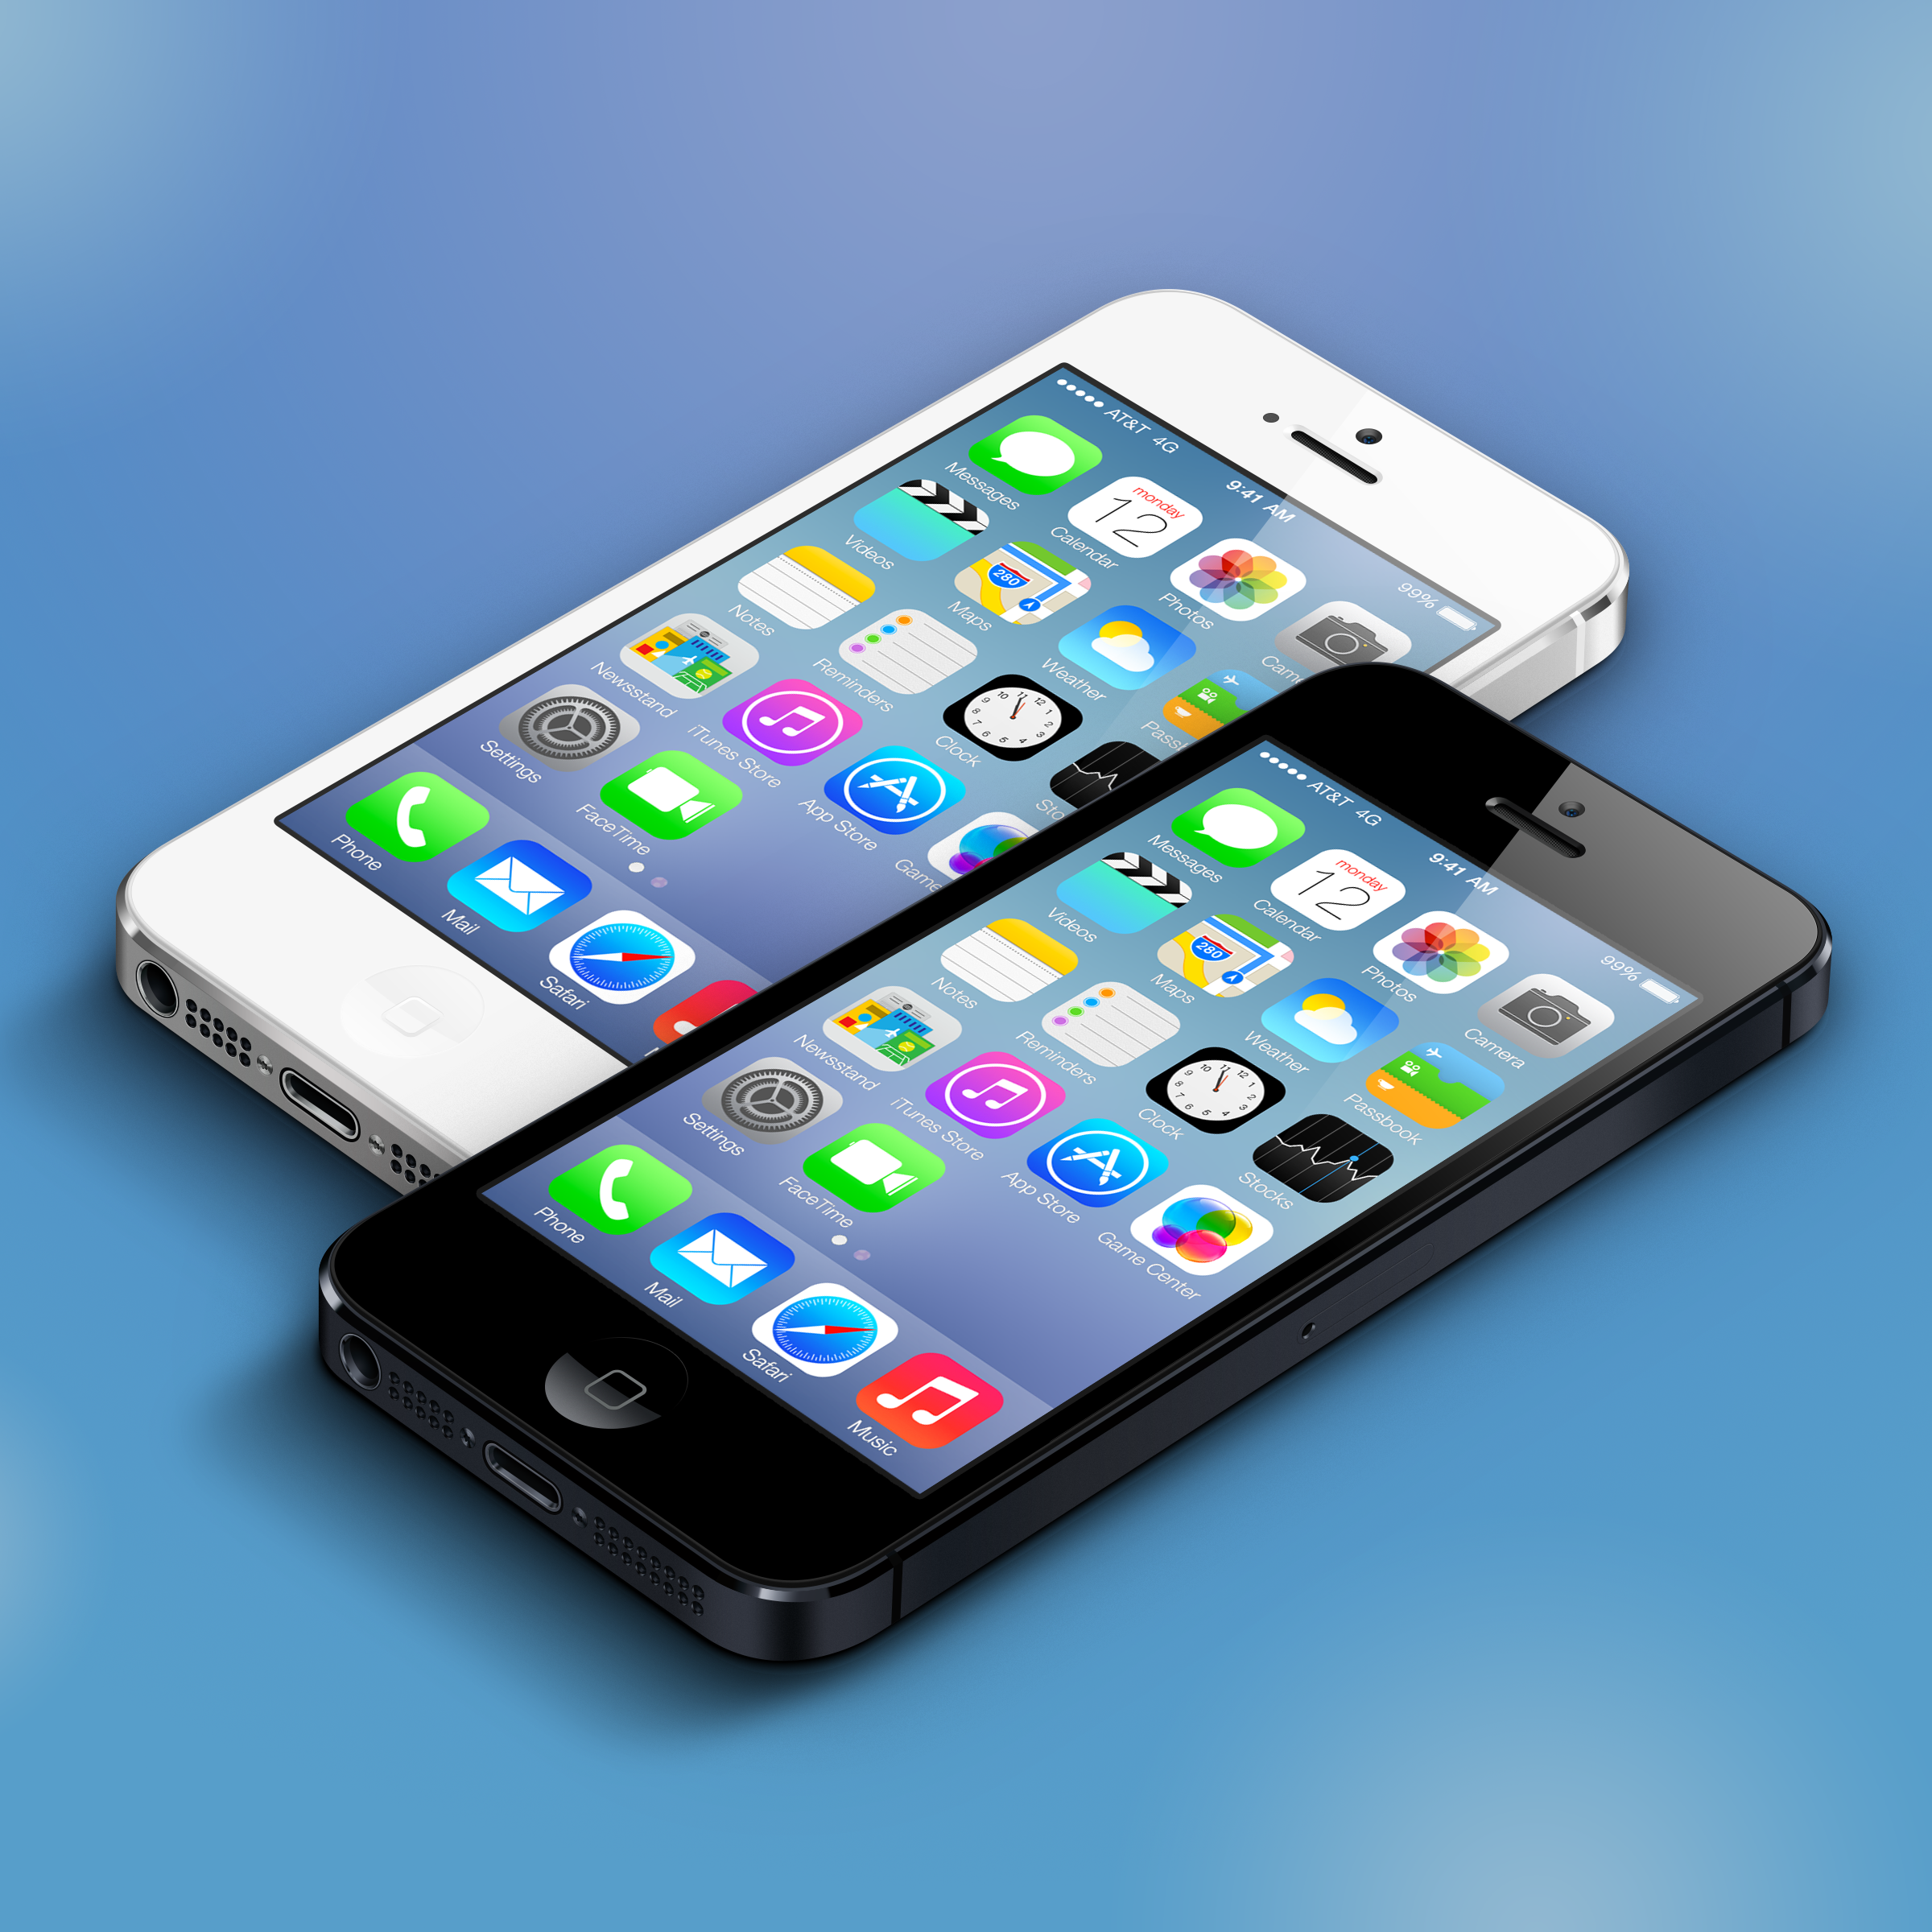 Iphone live wallpaper tumblr - Ios 7 Live Wallpaper For Iphone 4 Wallppapers Gallery